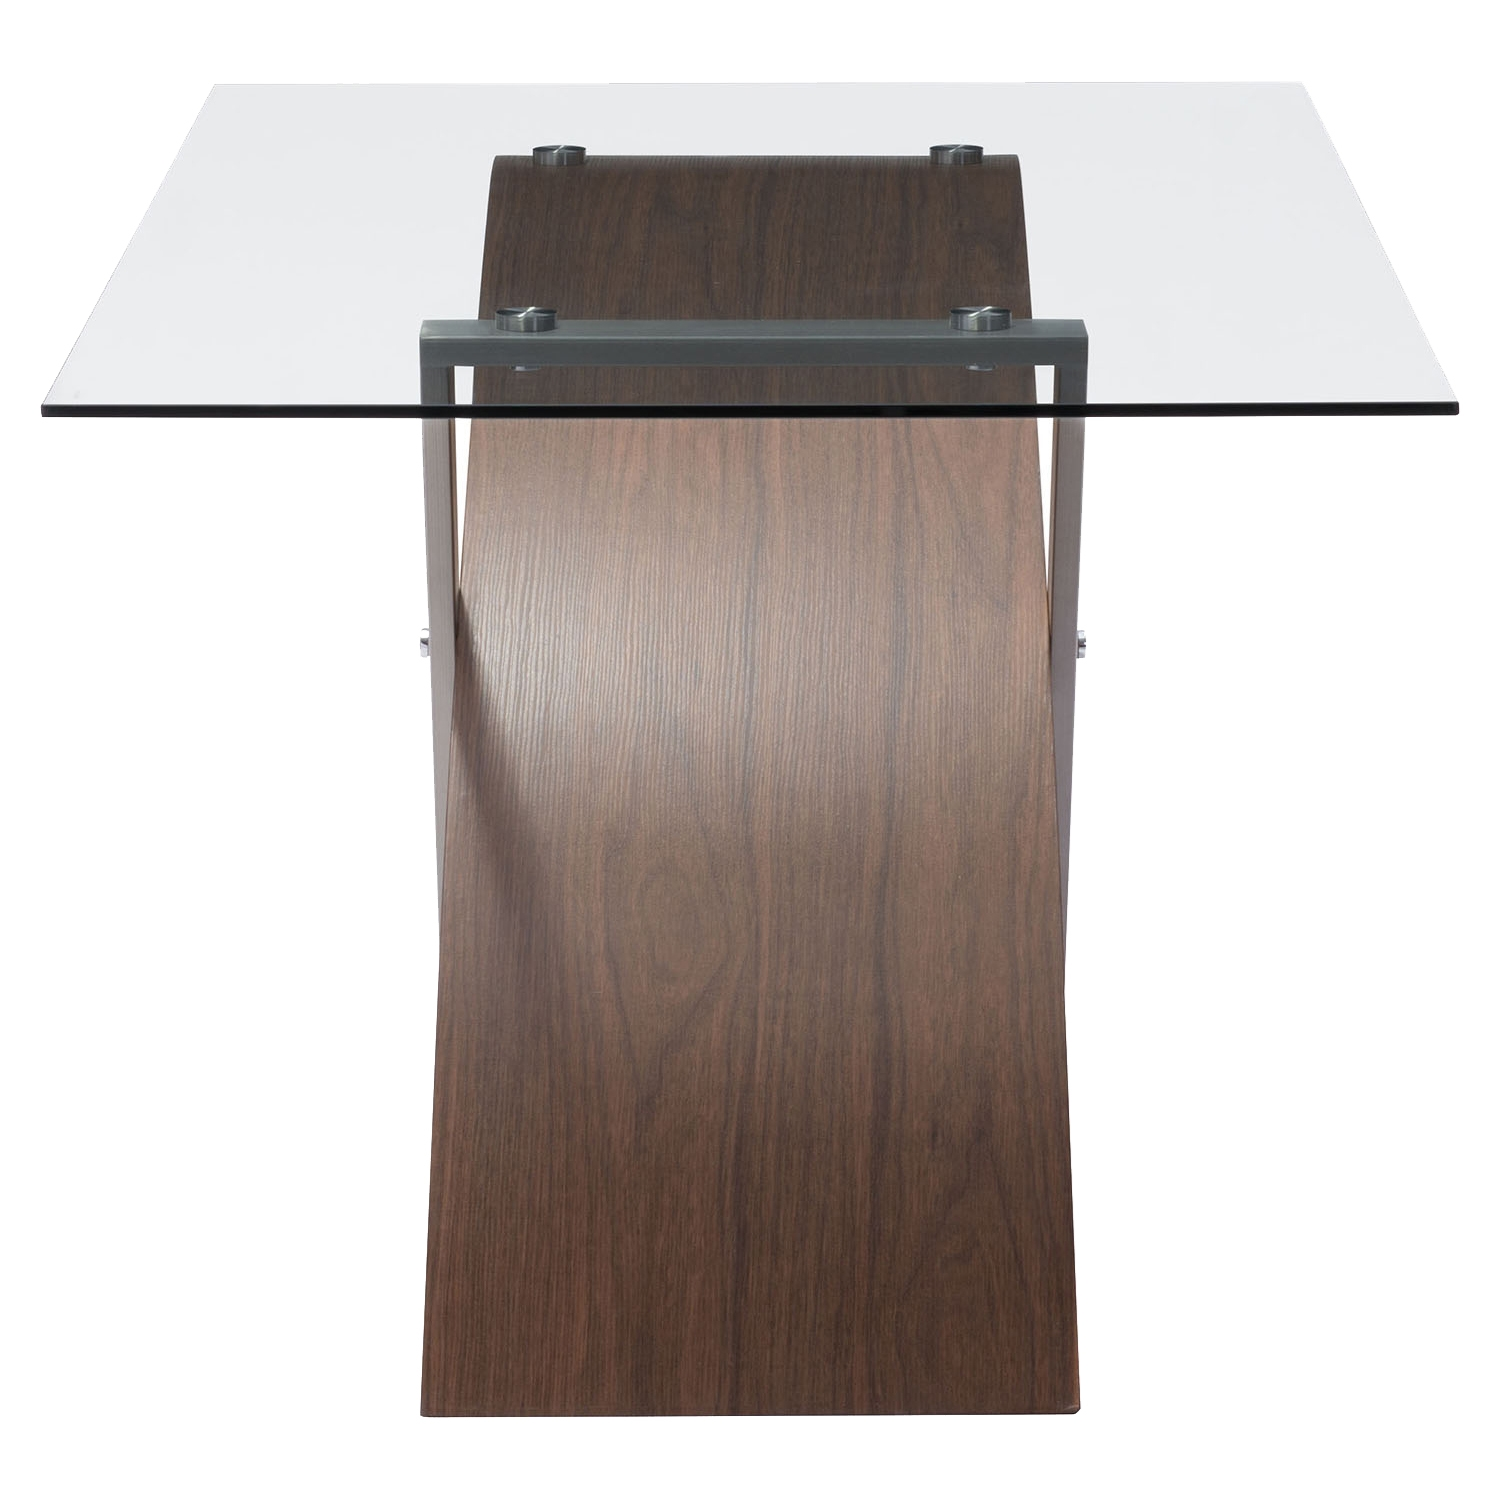 Outremont Walnut Dining Table - ZM-107861